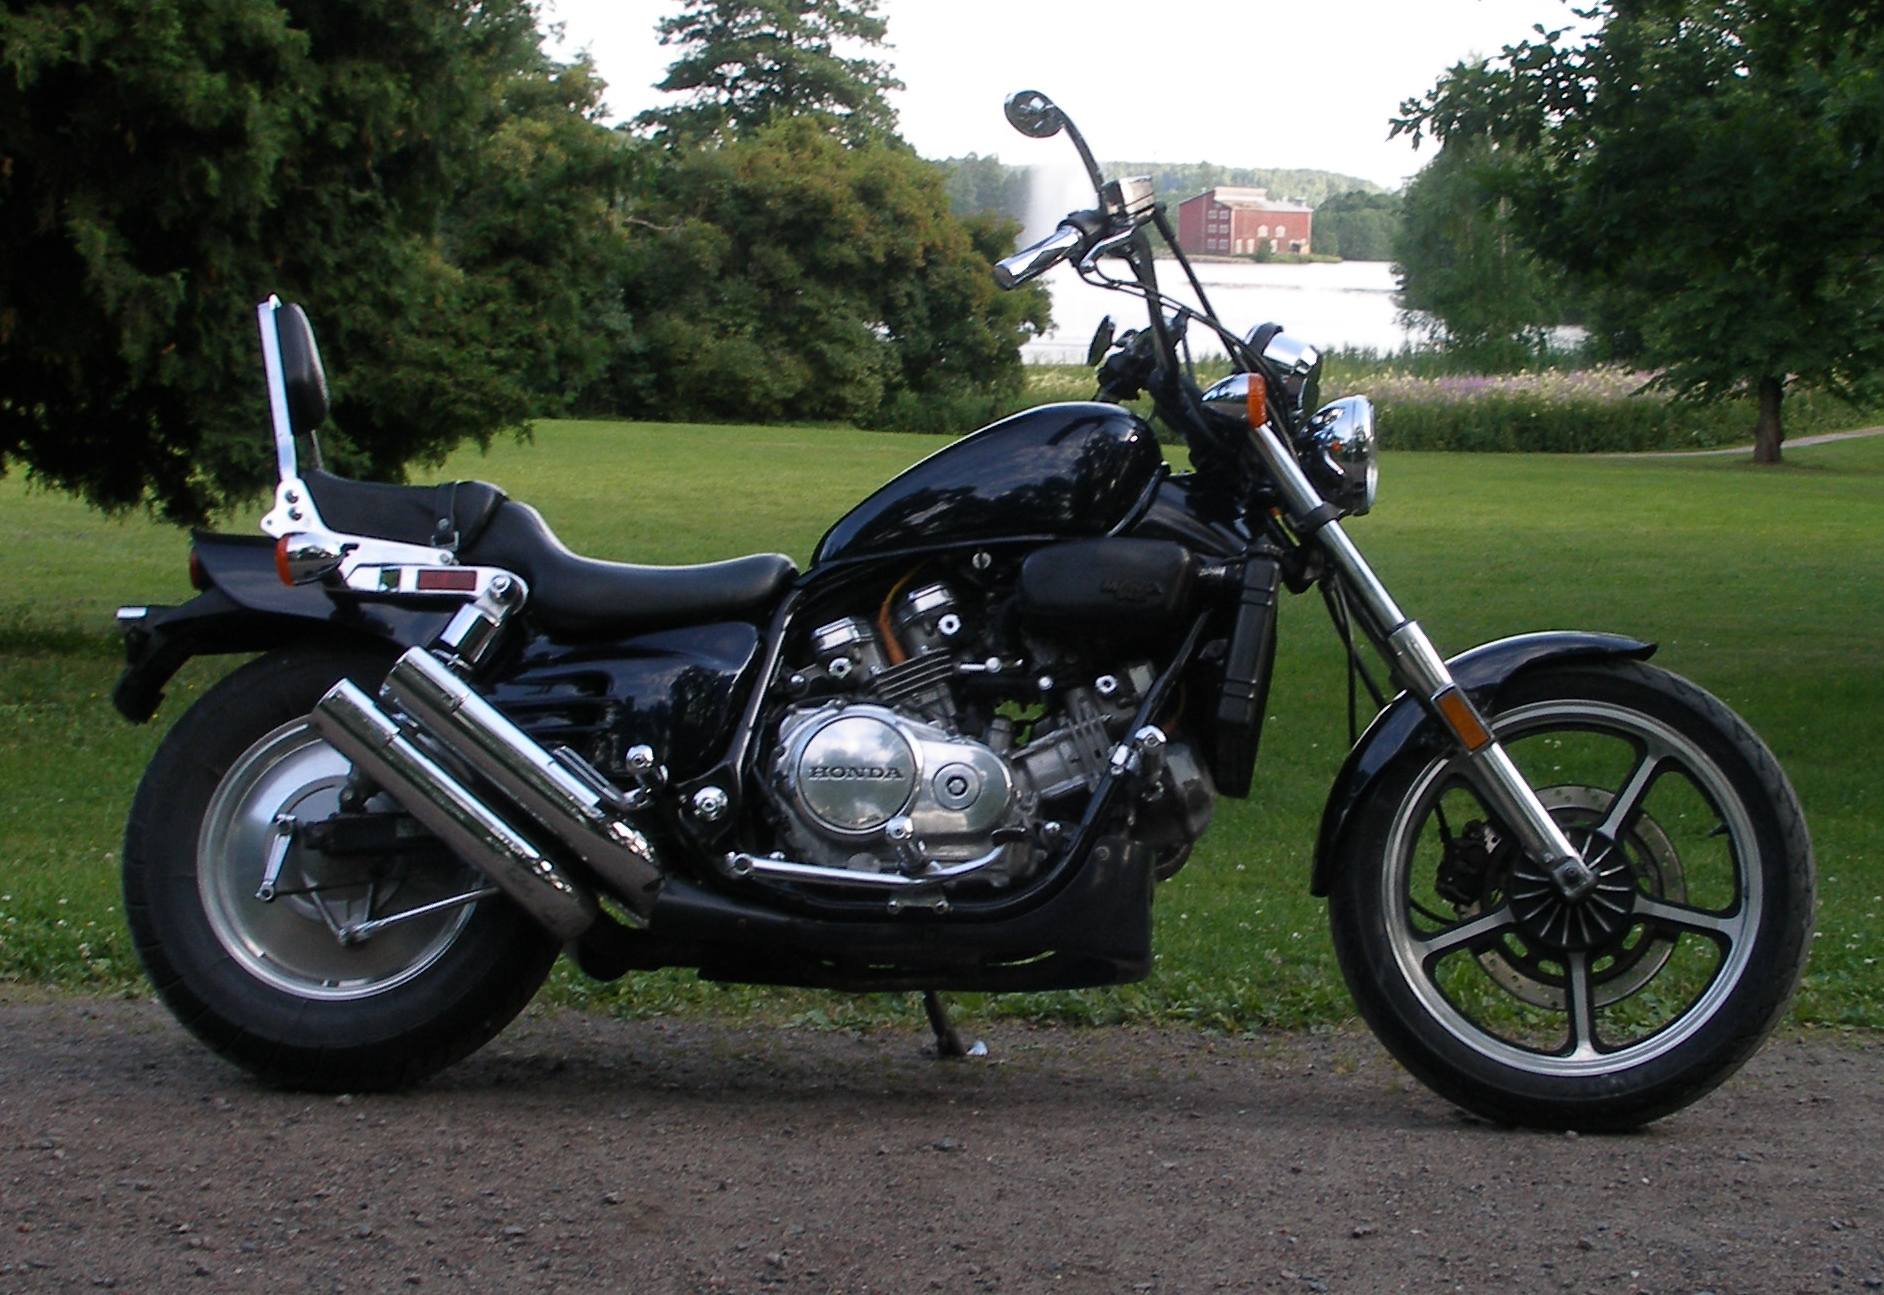 Honda Magna as well Watch further Ik Wil Een Magna V65 Vs Super Magna 87 1 moreover 191996388023 furthermore Motorcycle For List 11035 0. on 1994 honda magna vf750